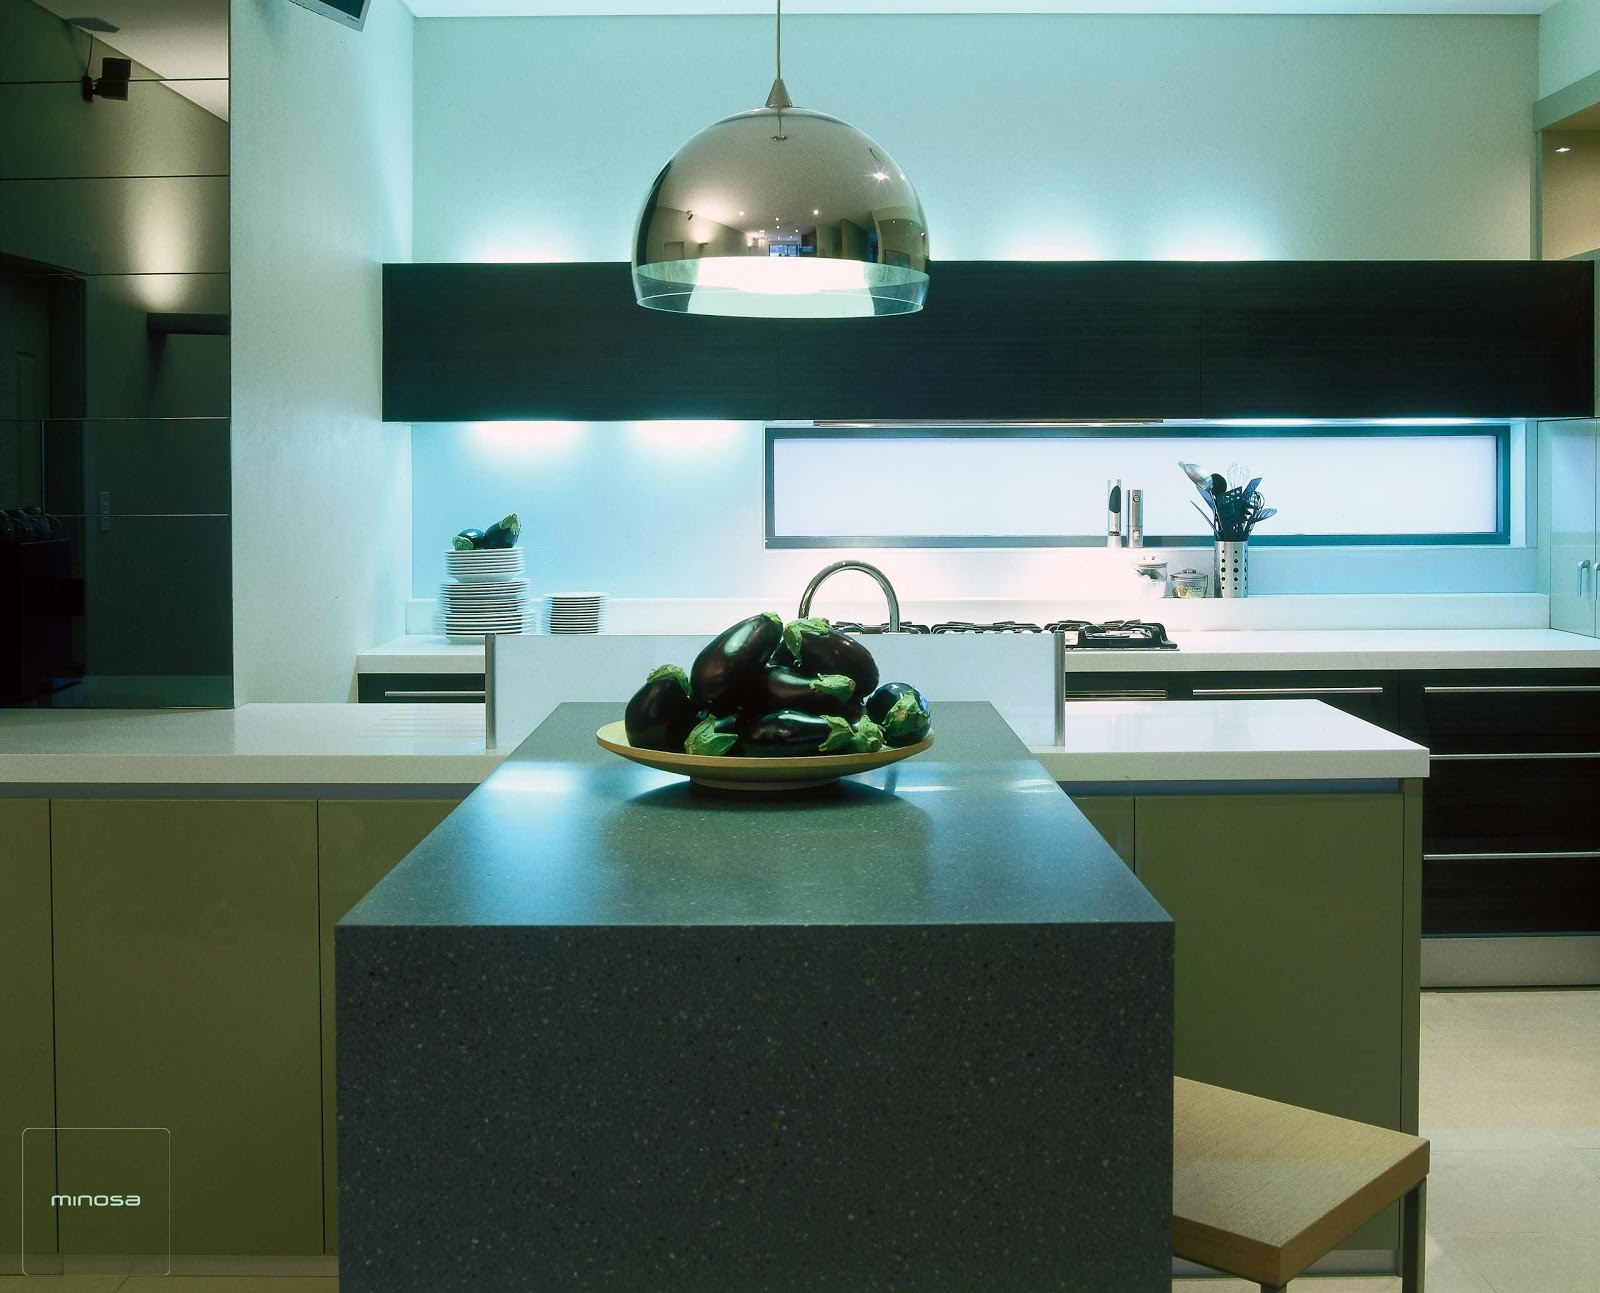 Minosa: Kitchen Design - The balancing act between design & function